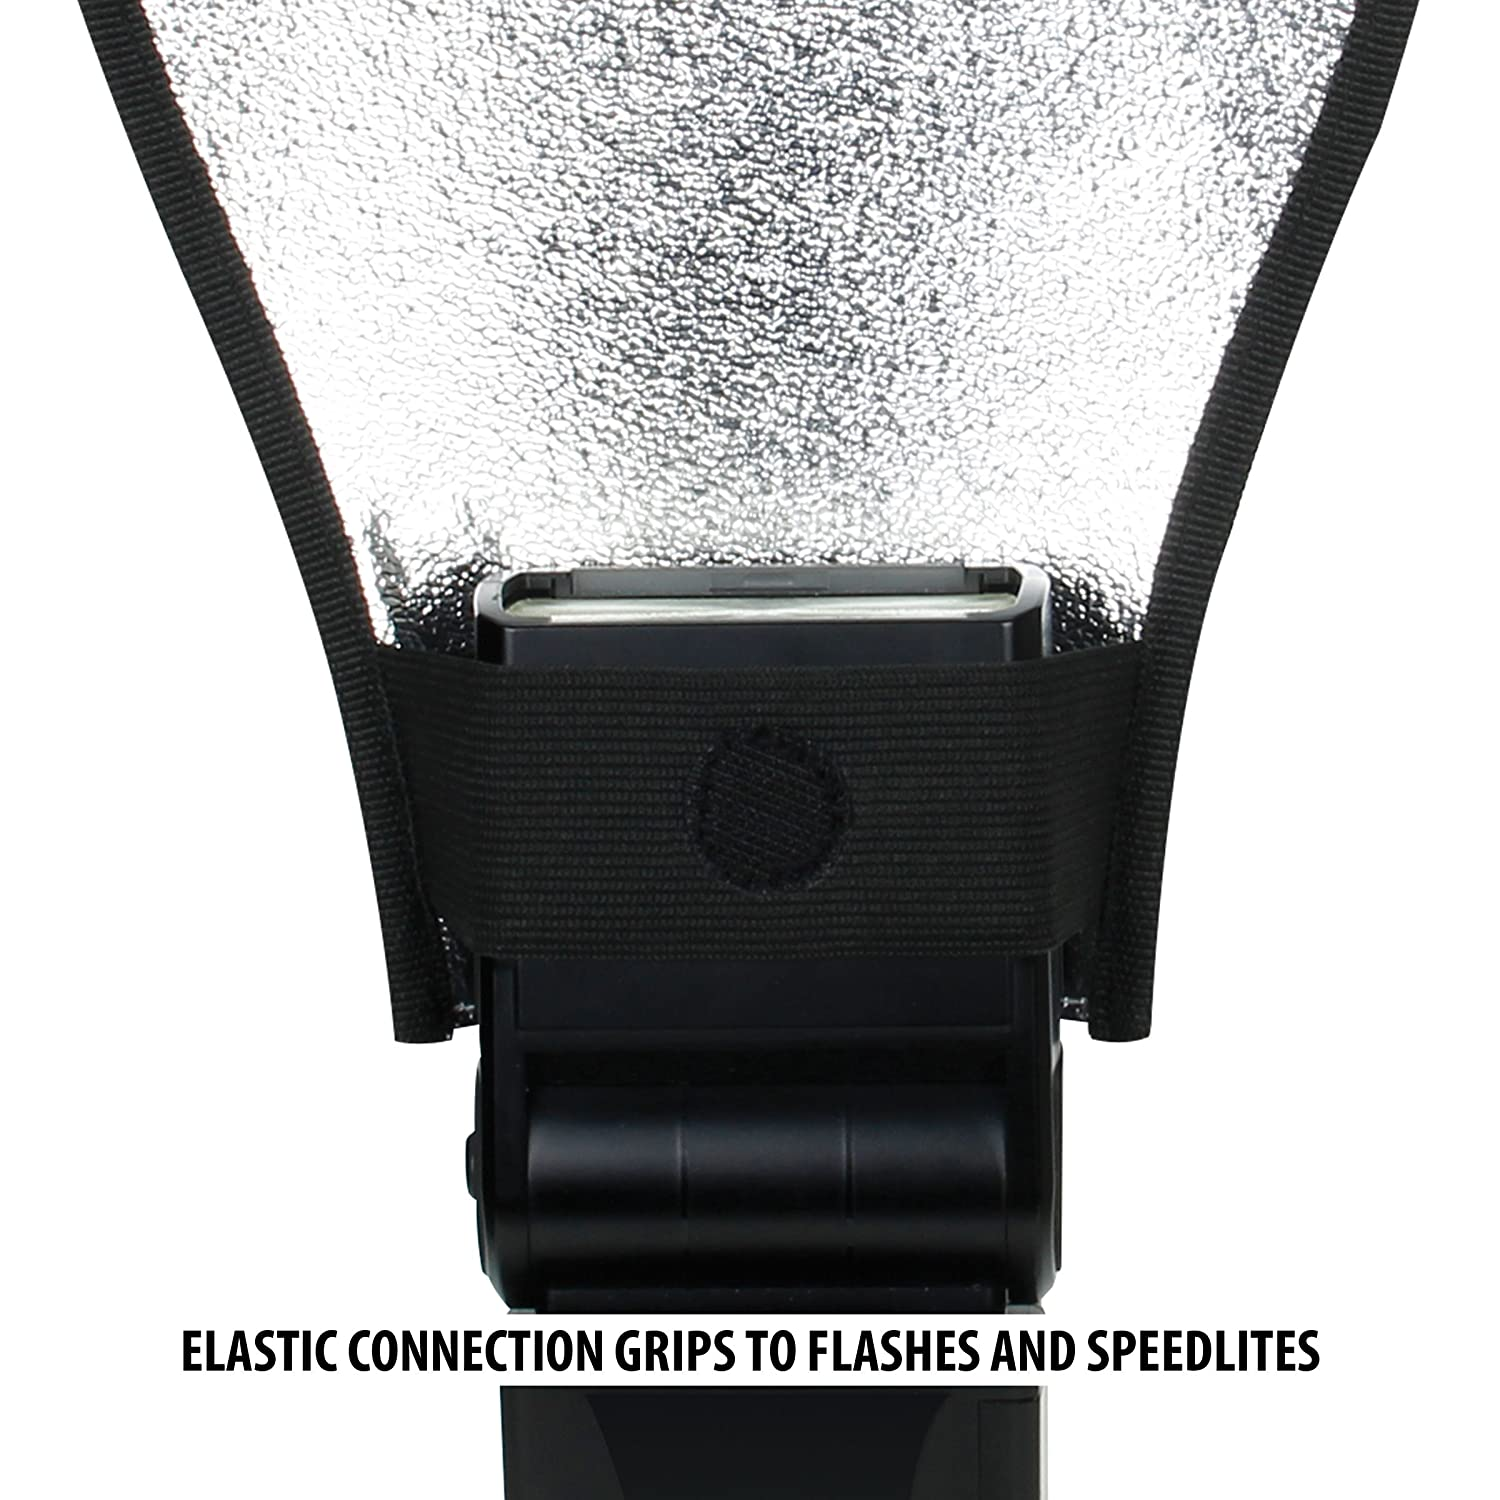 Compatible with Altura Godox YONGNUO and More Speedlites USA Gear 2 Sided Bounce Flash Diffuser Softbox with White Silver Reflector and Elastic Strap Connection for Speedlite Canon Neewer